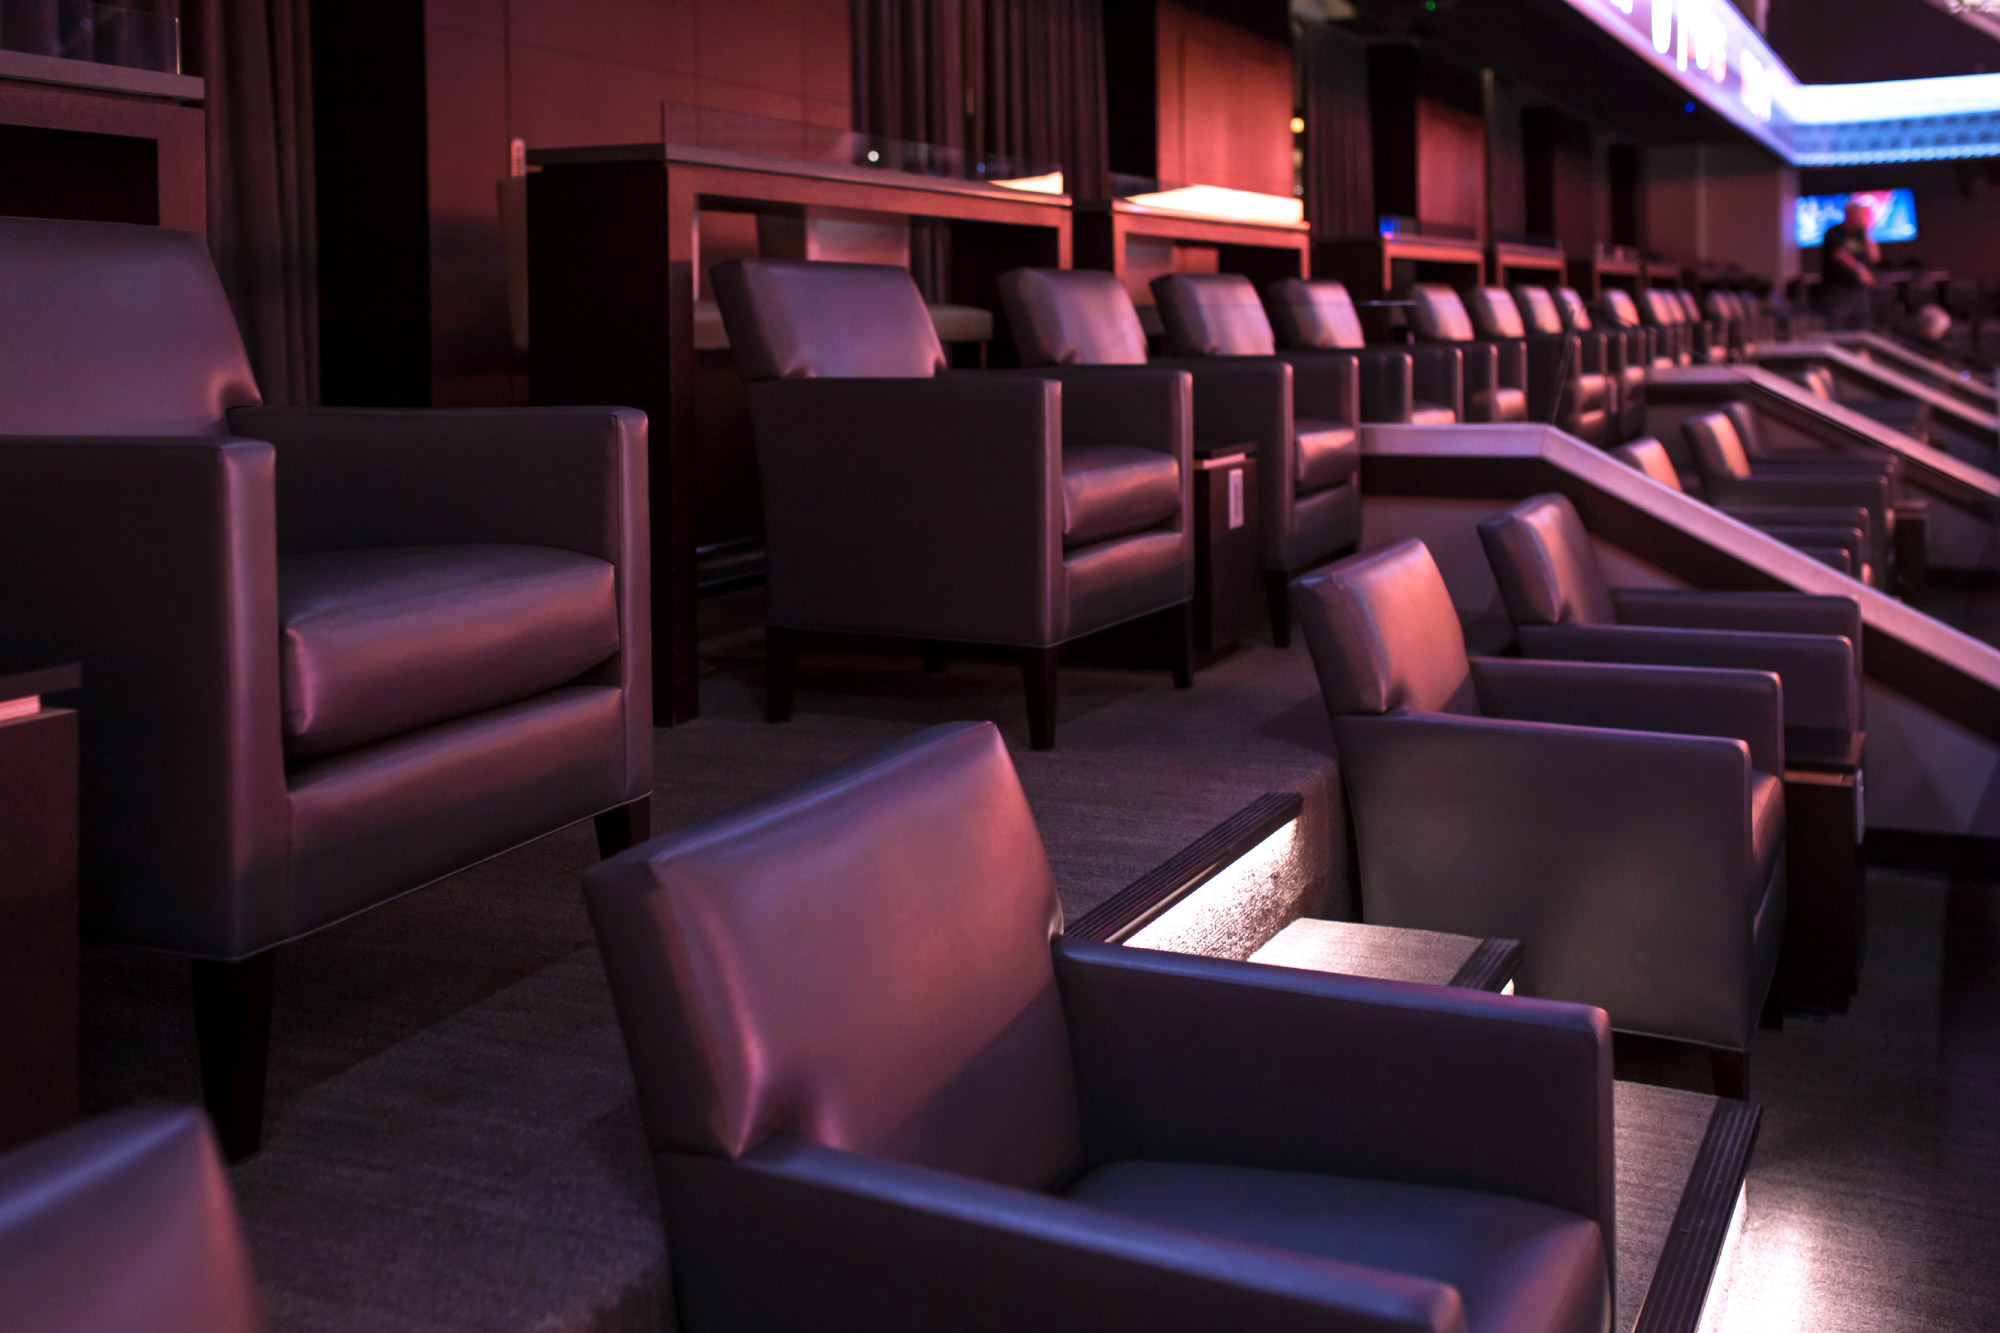 Theater box seating